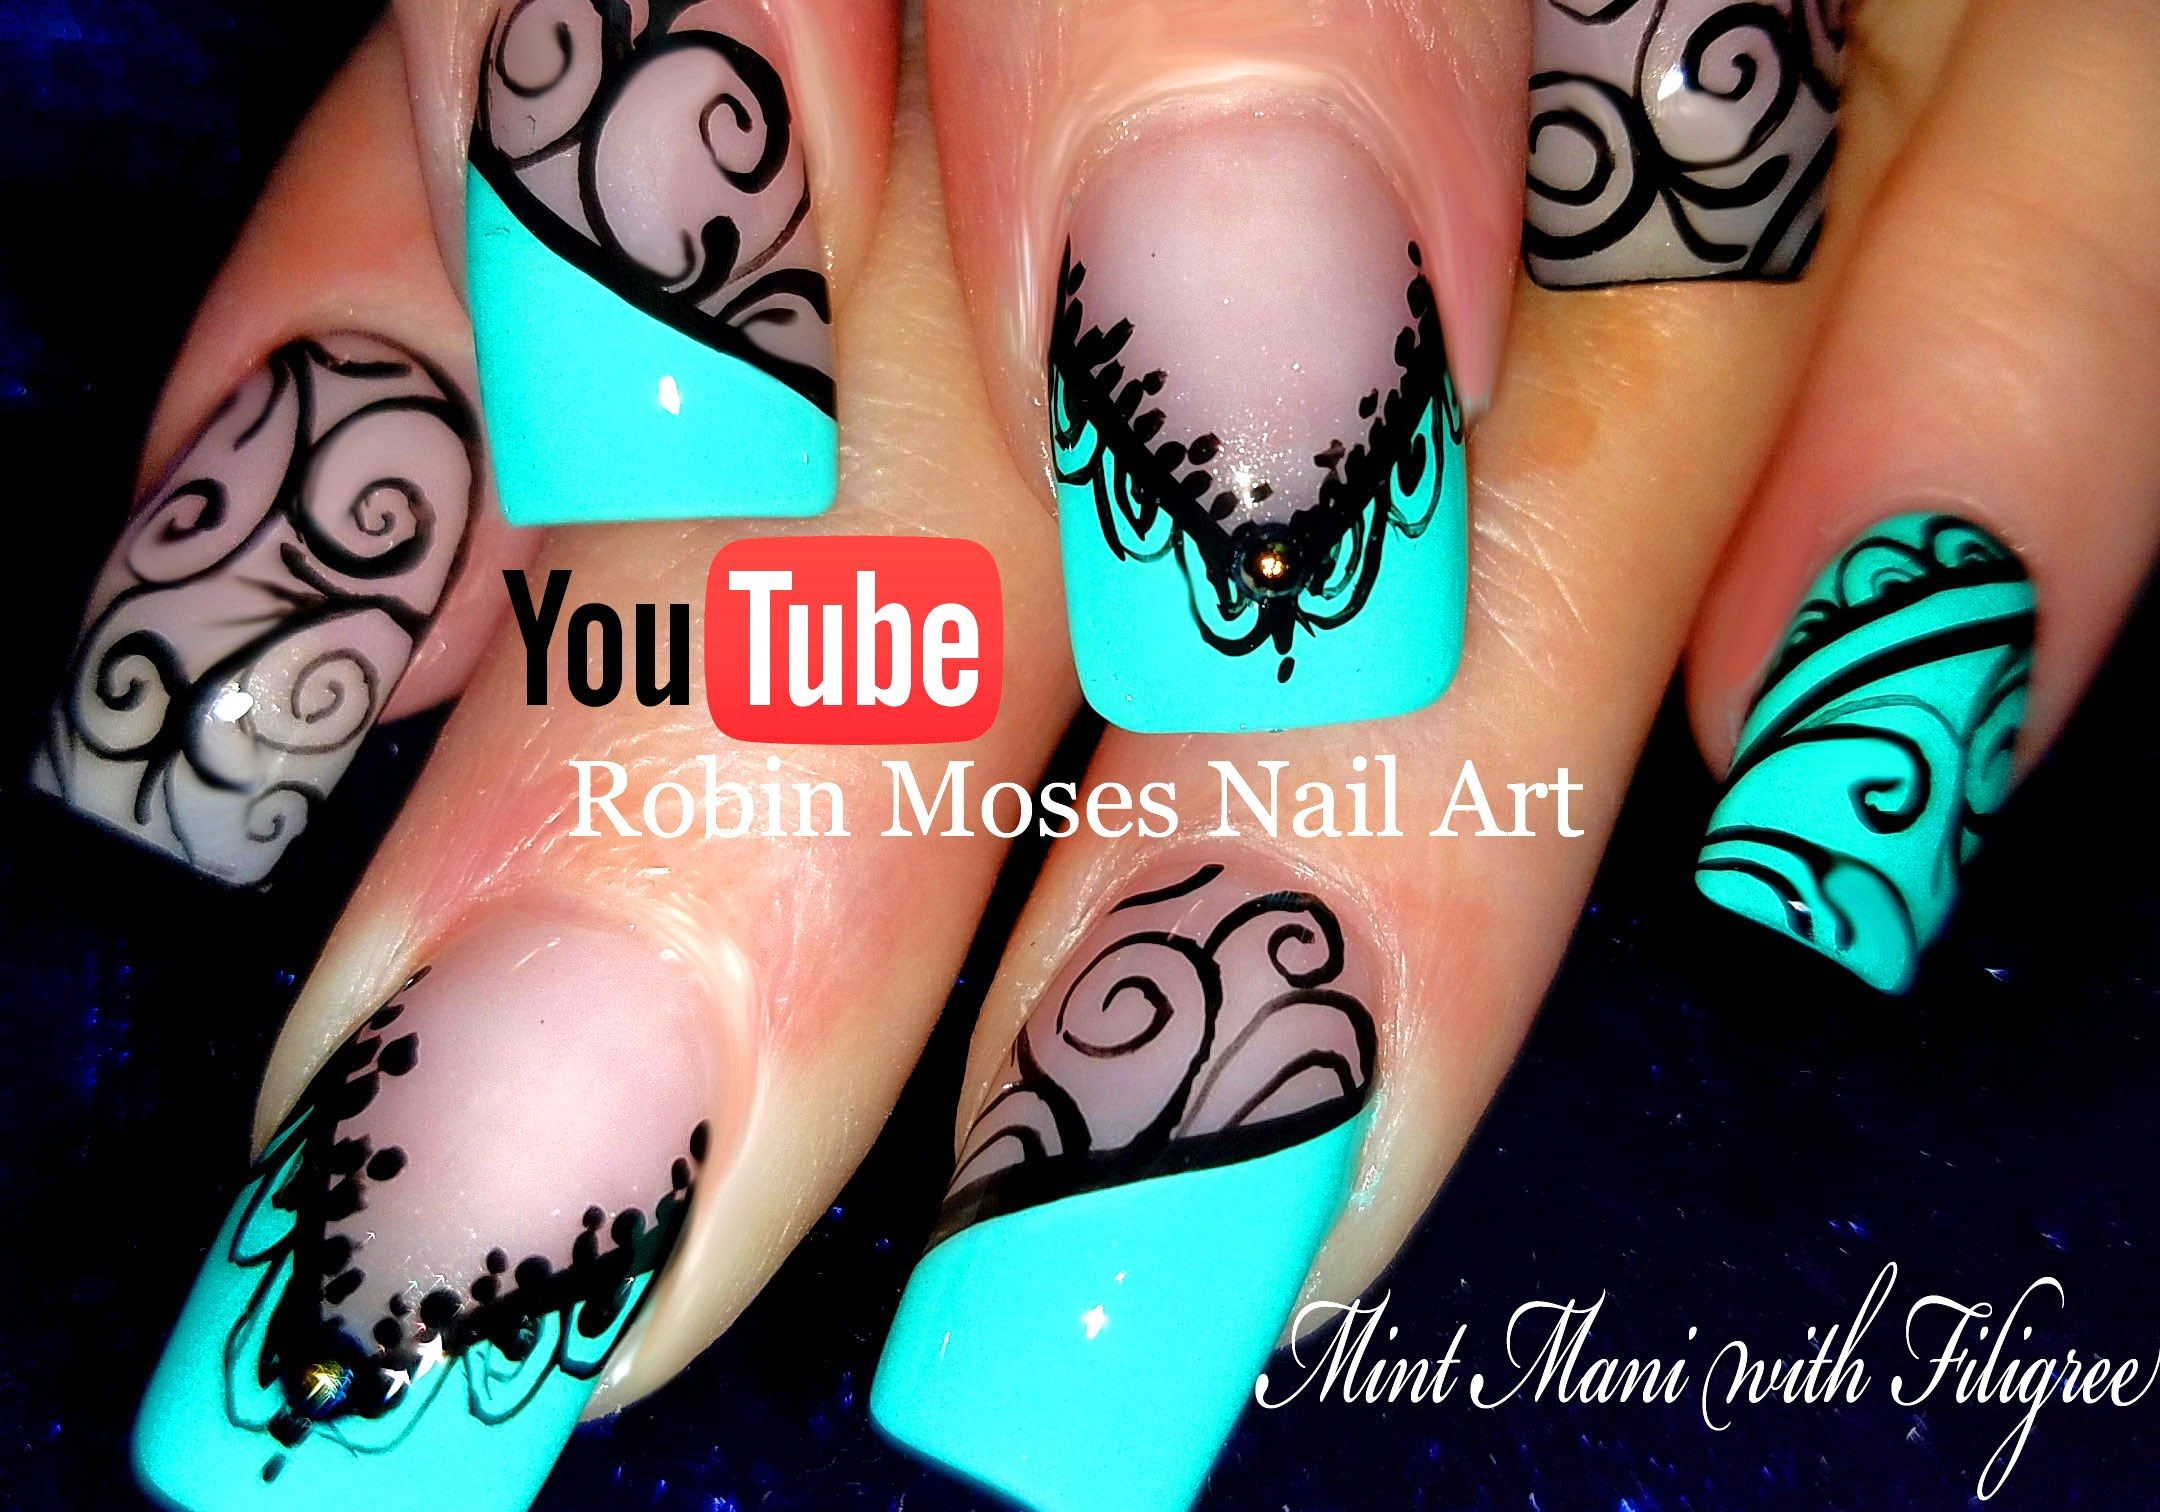 Black Lace Mint Mani Diy Hand Painted Nail Art Design Tutorial